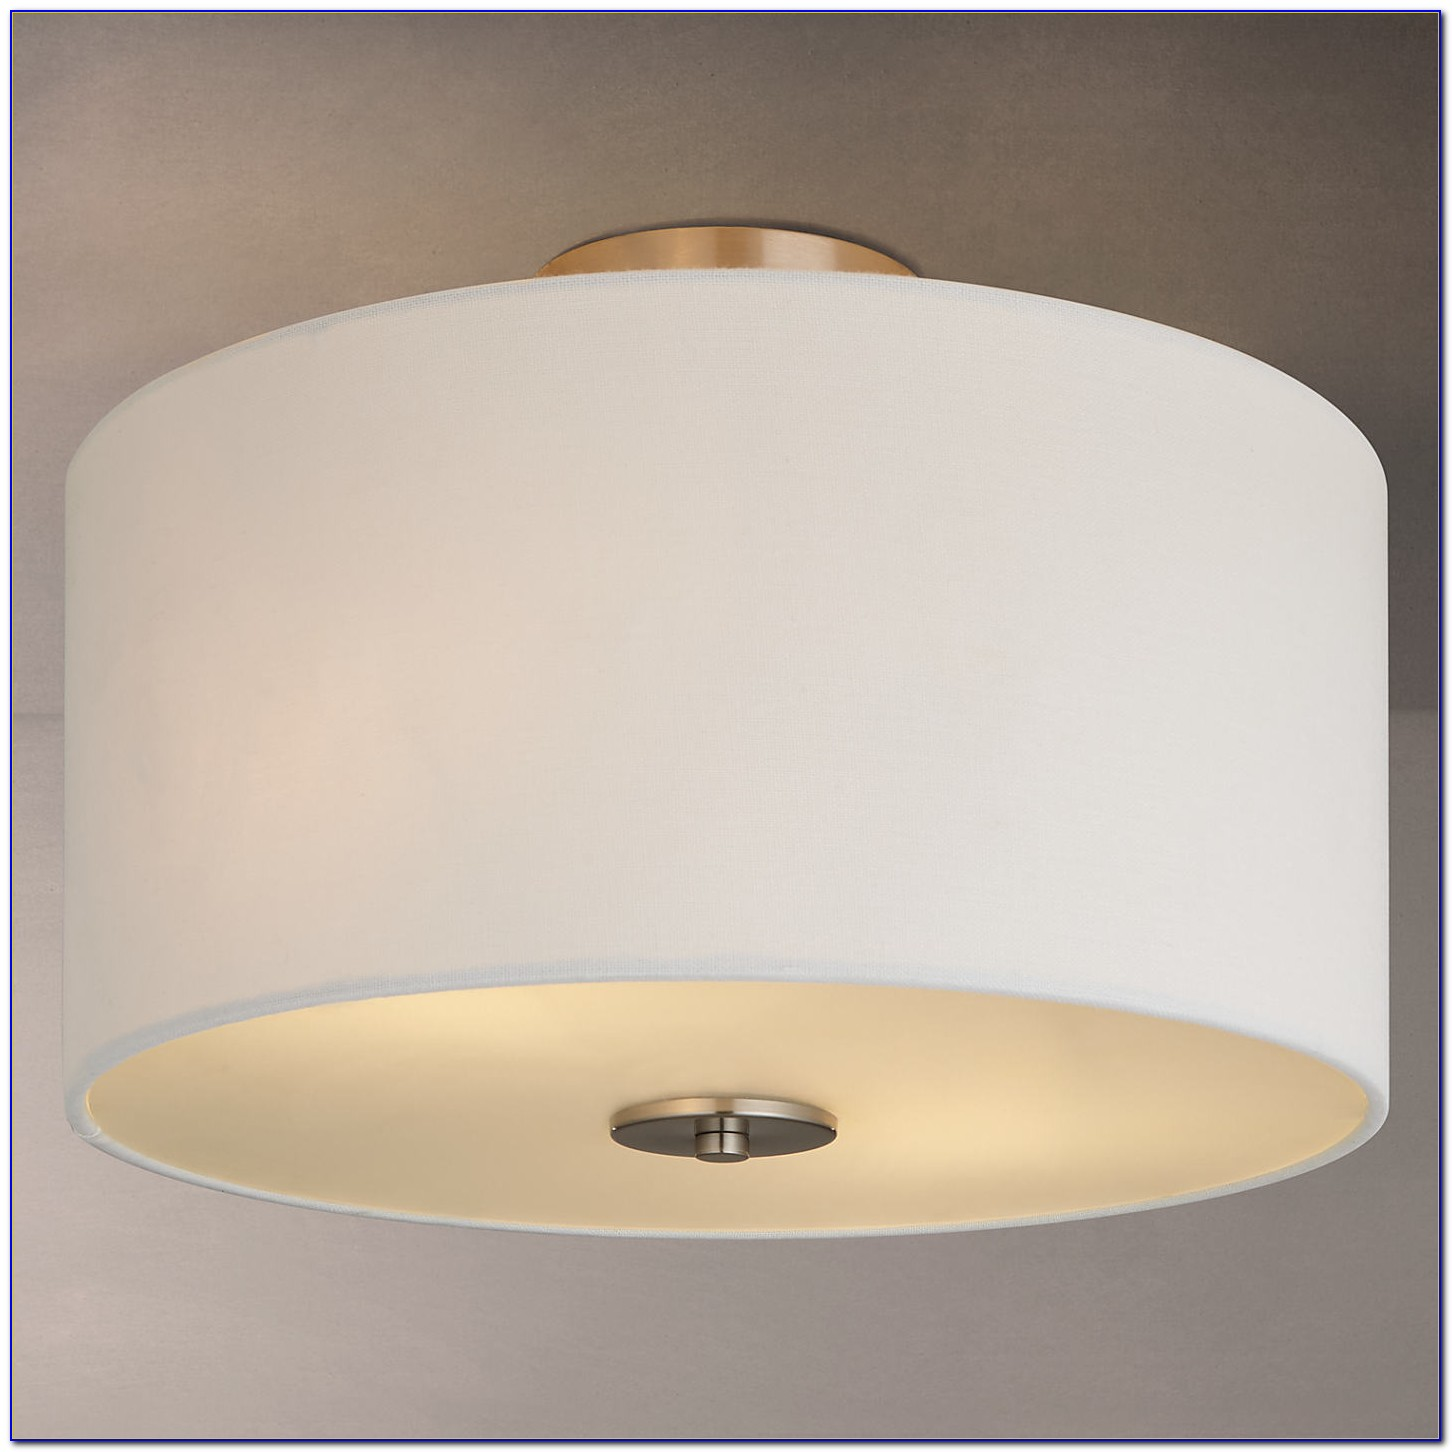 Large Flush Ceiling Light Fittings